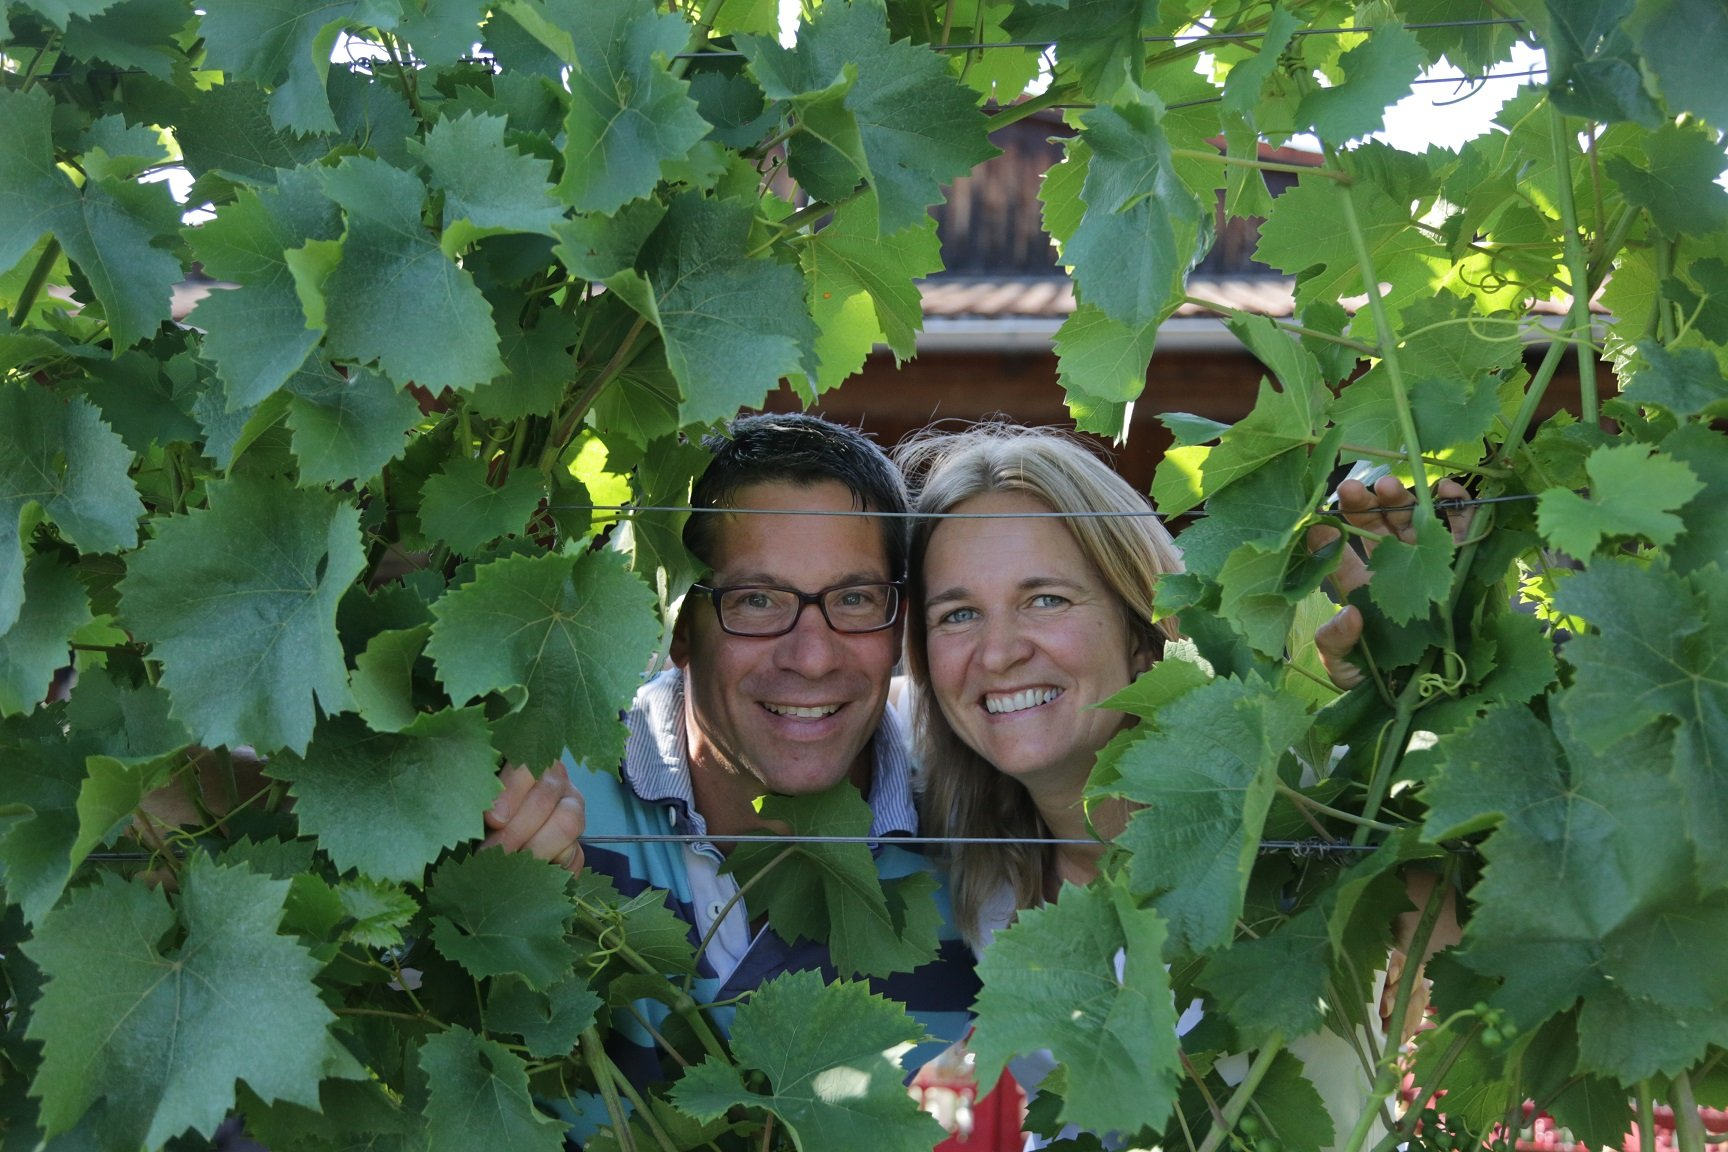 Friendly welcome from the Haeussermann family with a view through the vines